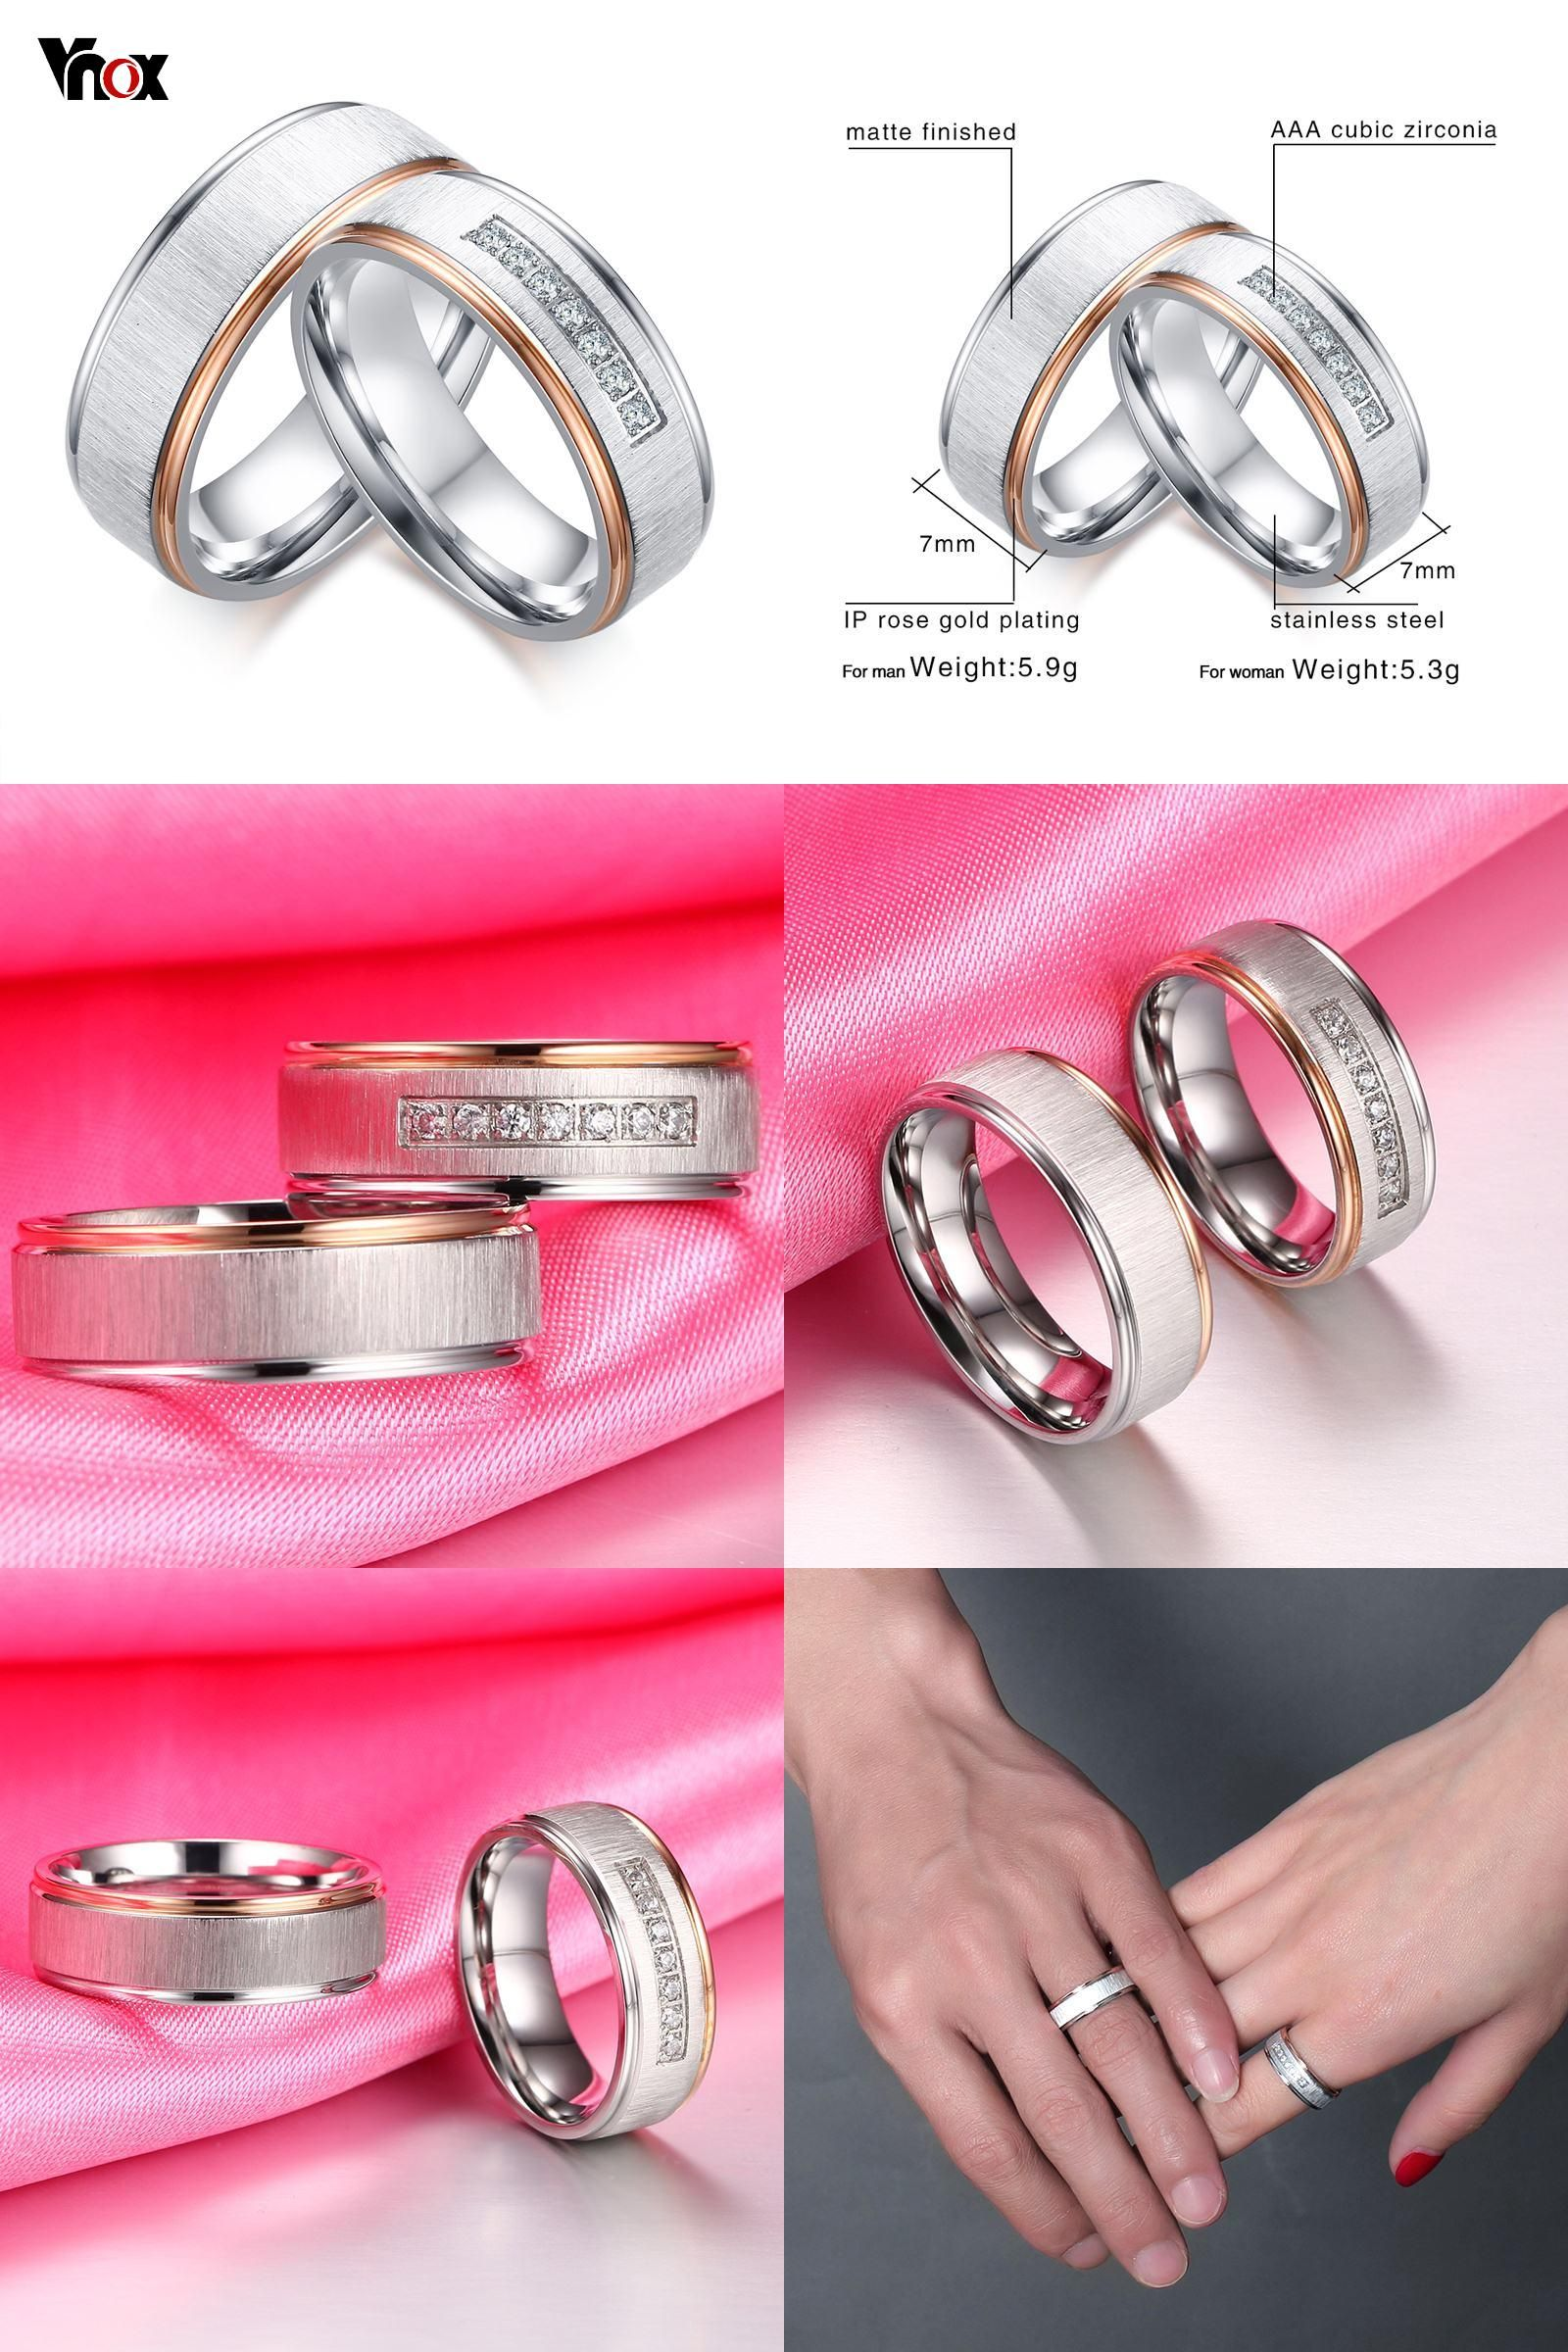 Visit to Buy] Vnox Matt Surface Wedding Rings for Women Men CZ ...